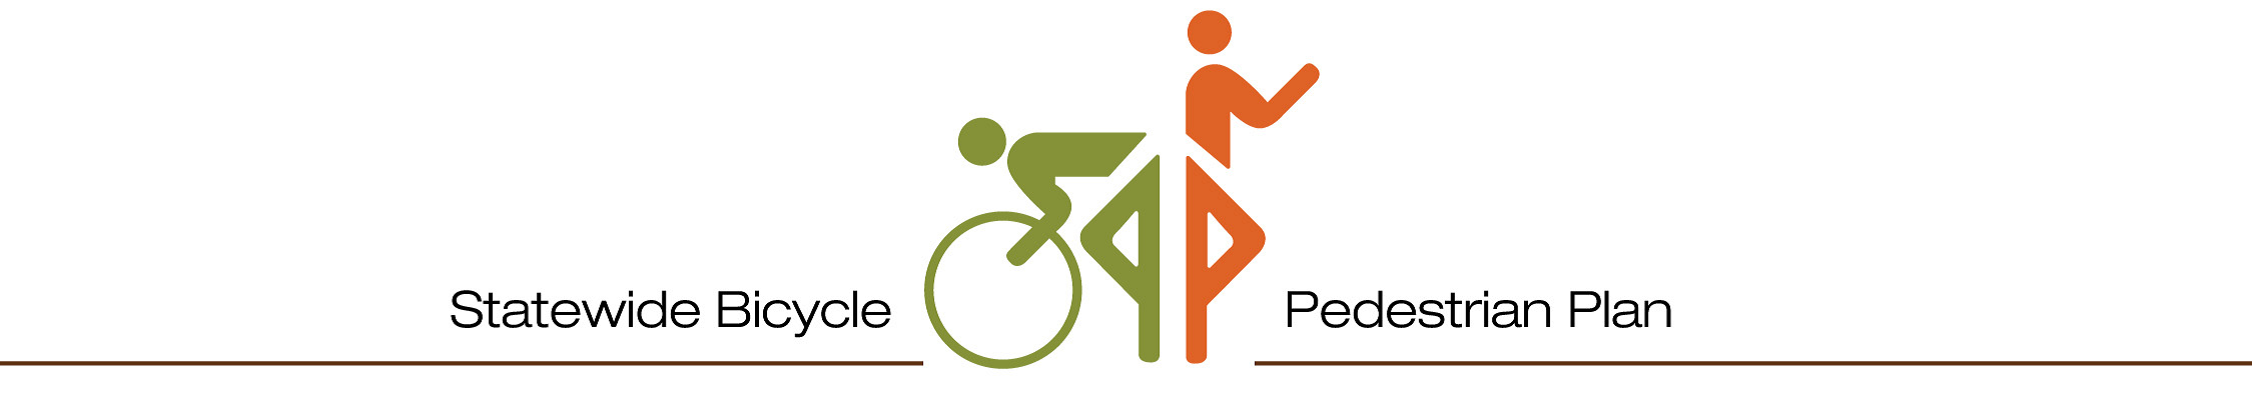 Statewide Bicycle Pedestrian Plan